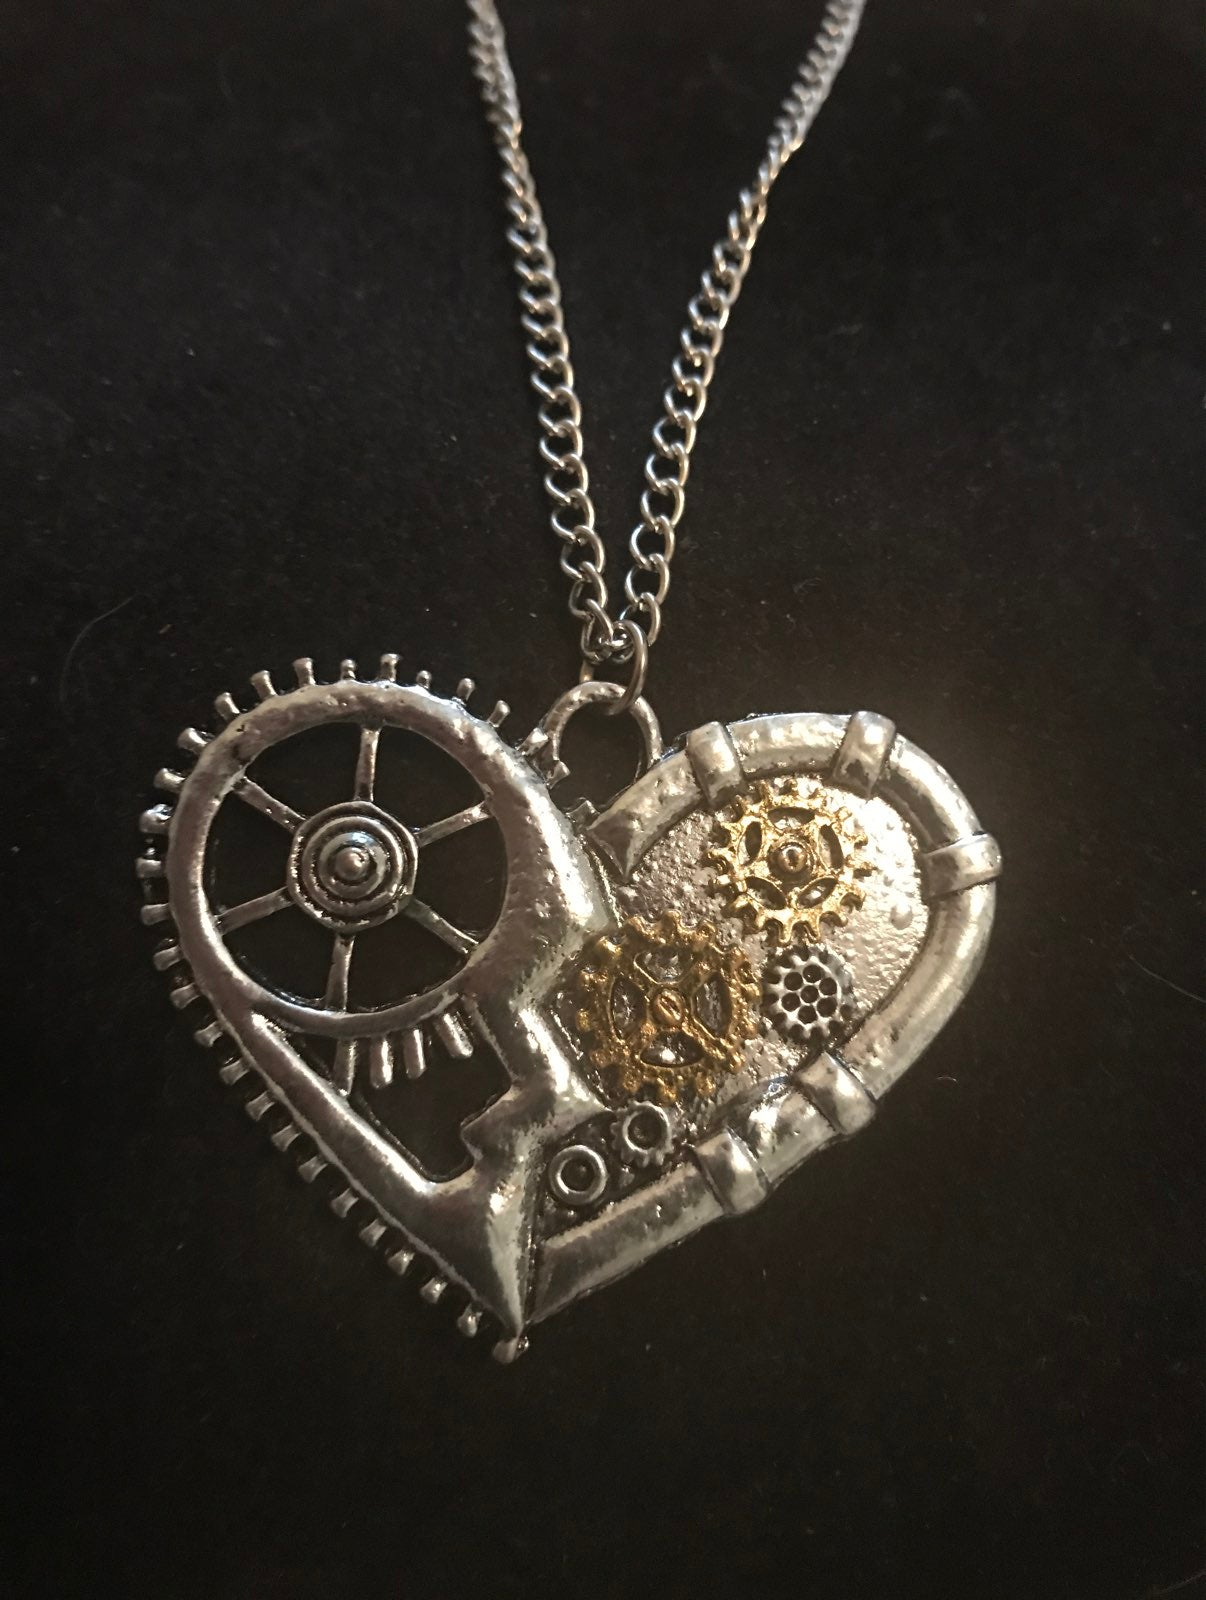 Steam punk heart necklace with chain